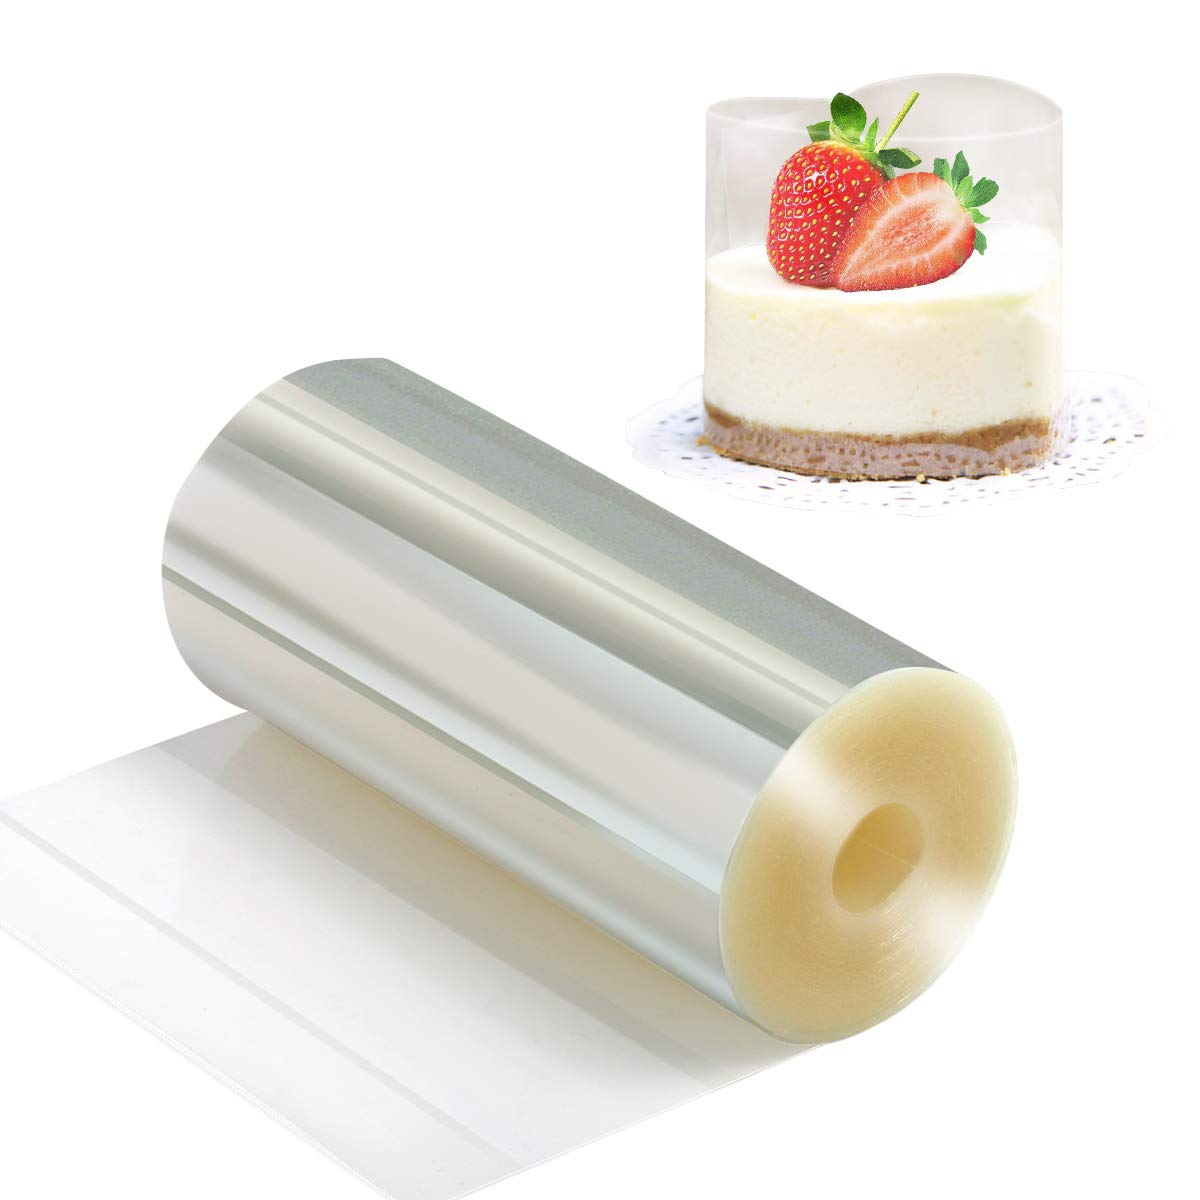 Cake Collars 3.9 x 394inch, Picowe Acetate Rolls, Clear Cake Strips, Transparent Cake Rolls, Mousse Cake Acetate Sheets for Chocolate Mousse Baking, Cake Decorating